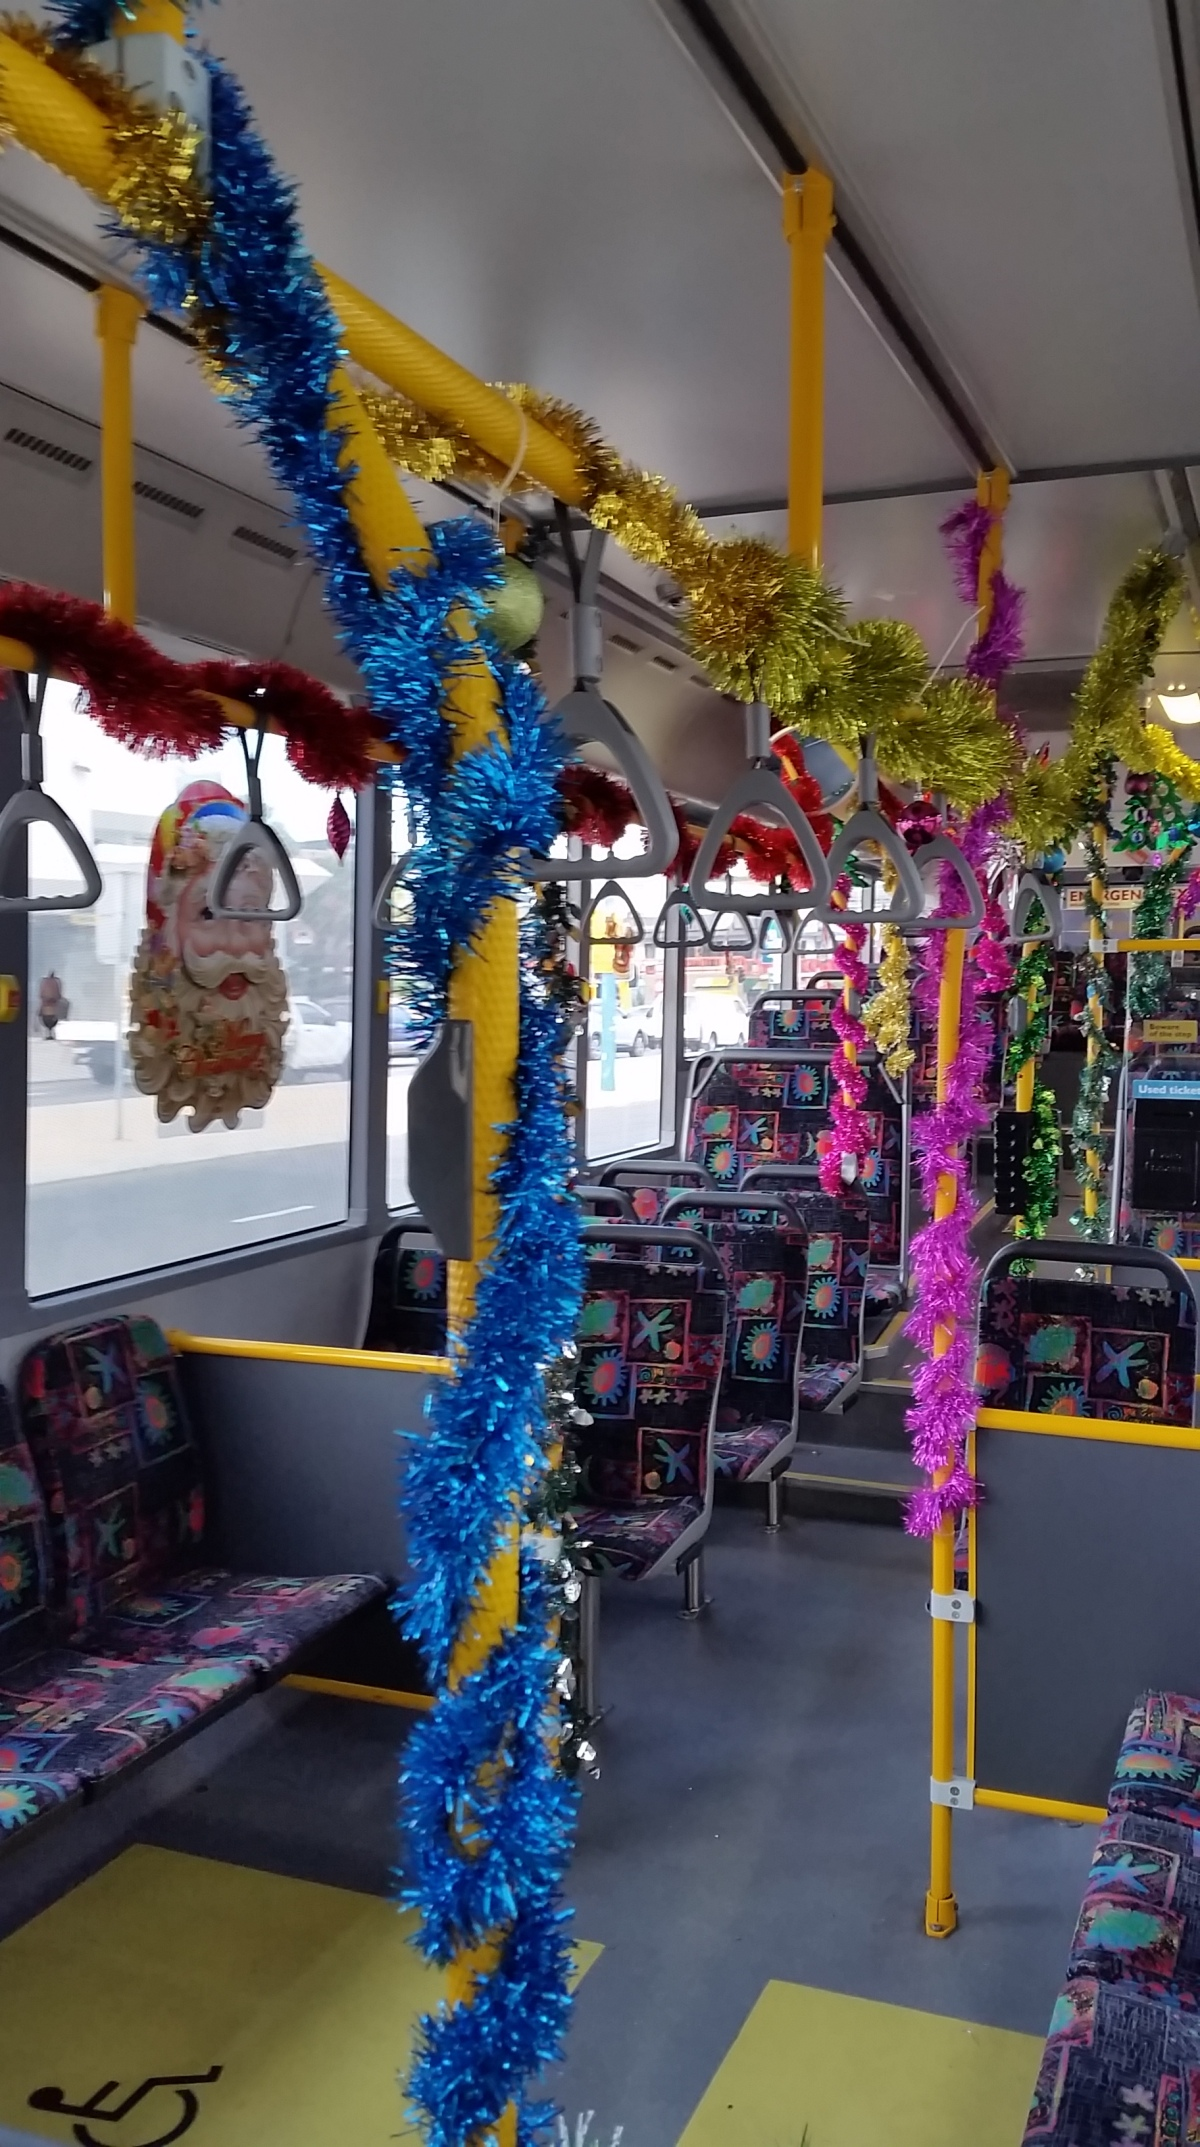 Christmas in a Bus